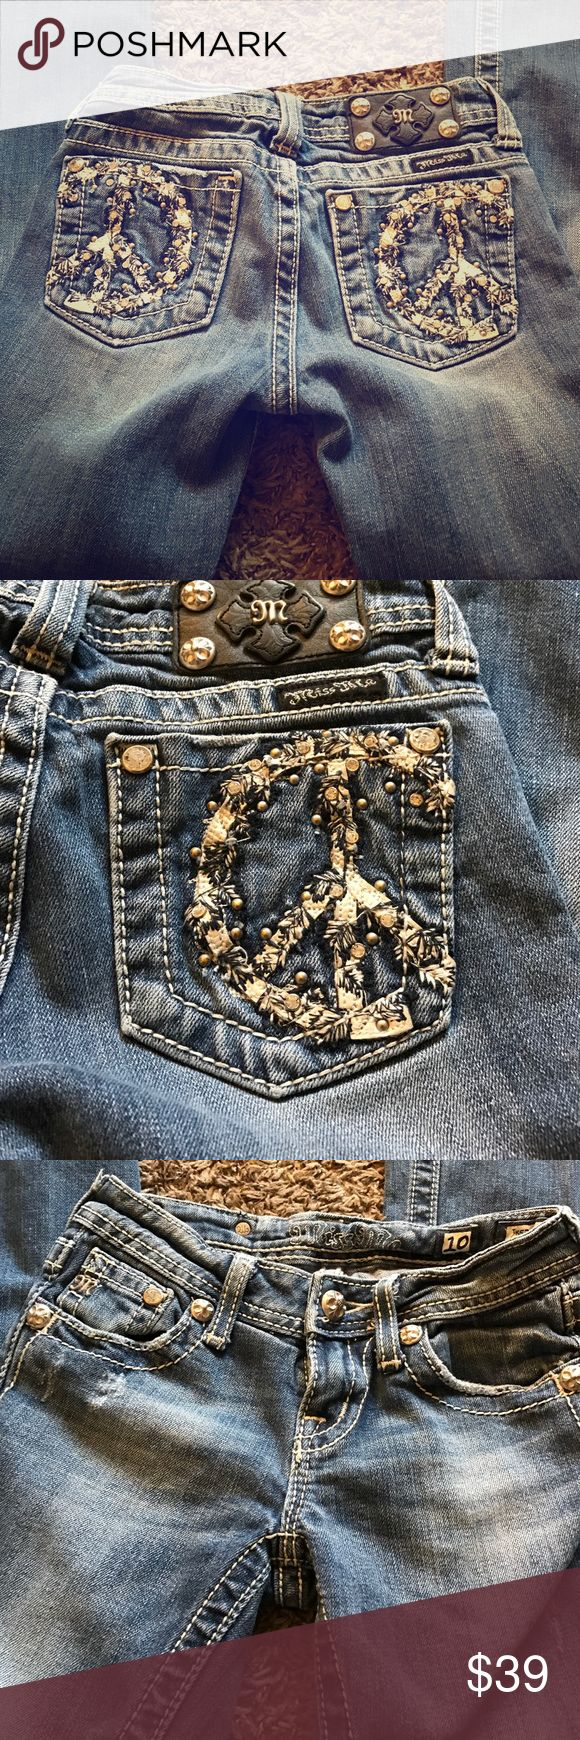 Miss Me peace sign jeans Miss Me brand boot cut jeans/ adorable crystal embellished peace signs /size 10 Miss Me Bottoms Jeans